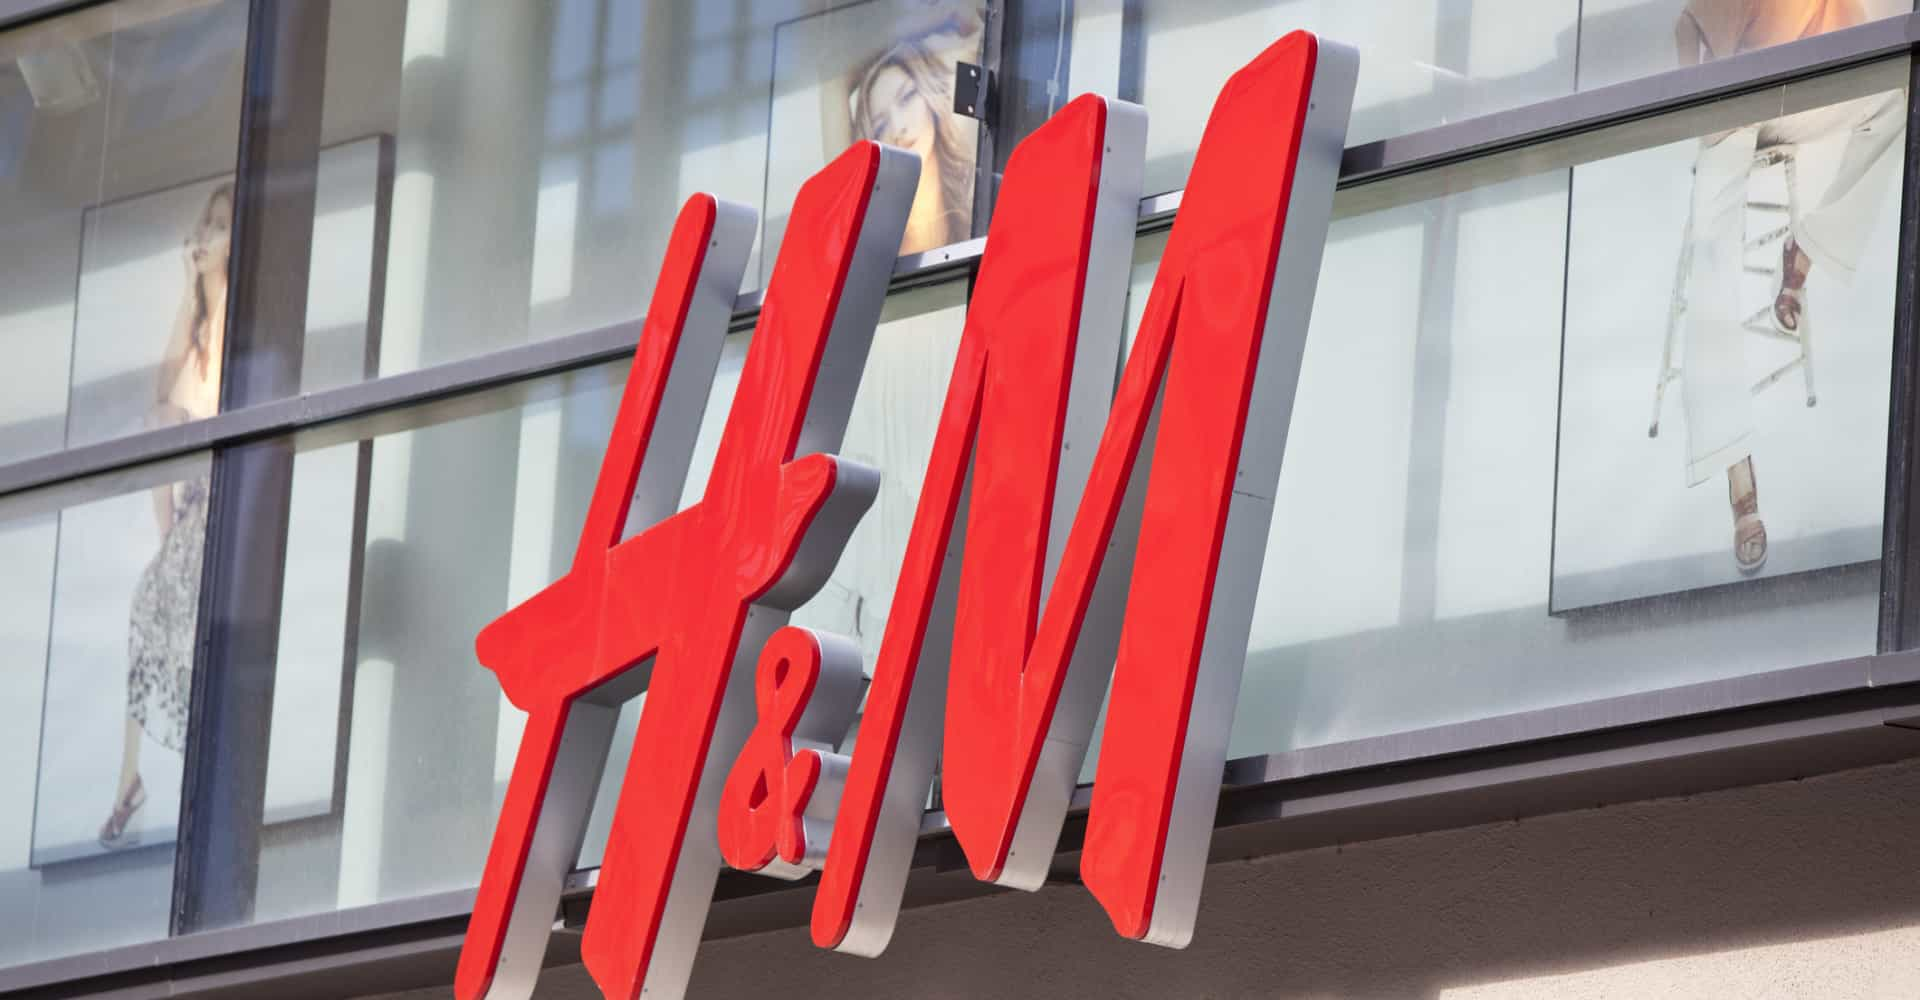 H&M is partnering with a marketing team from South Africa